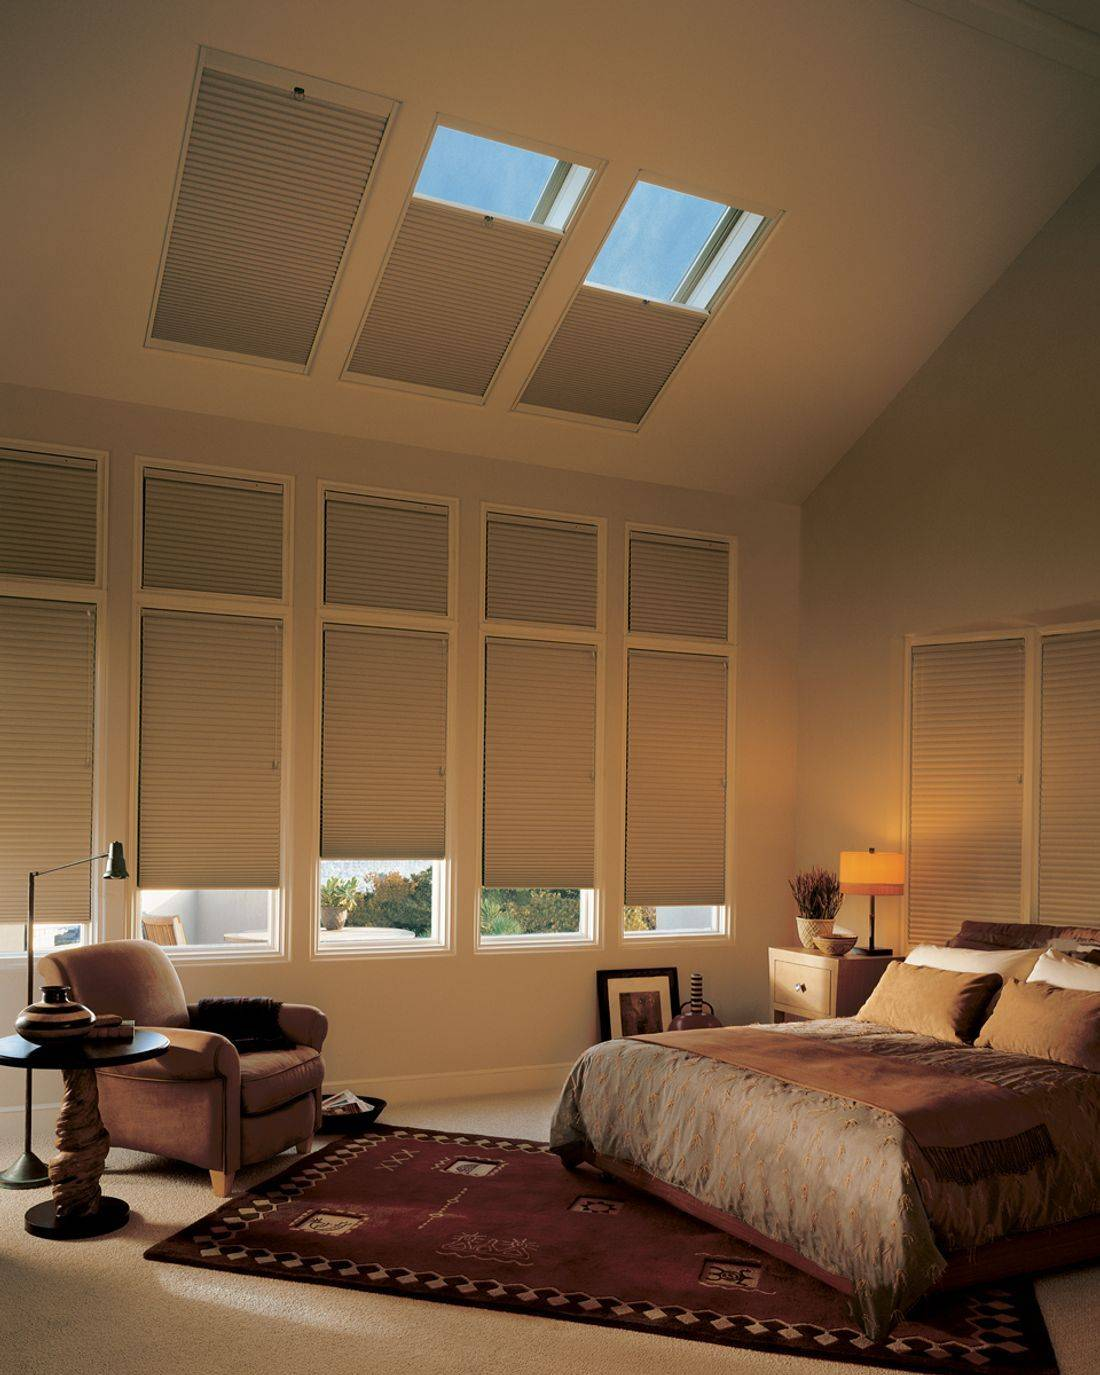 Hunter Douglas Architella Duette shades feature honeycomb-within-a-honeycomb construction for added energy savings. These are ideal shades for motorization in a skylight.